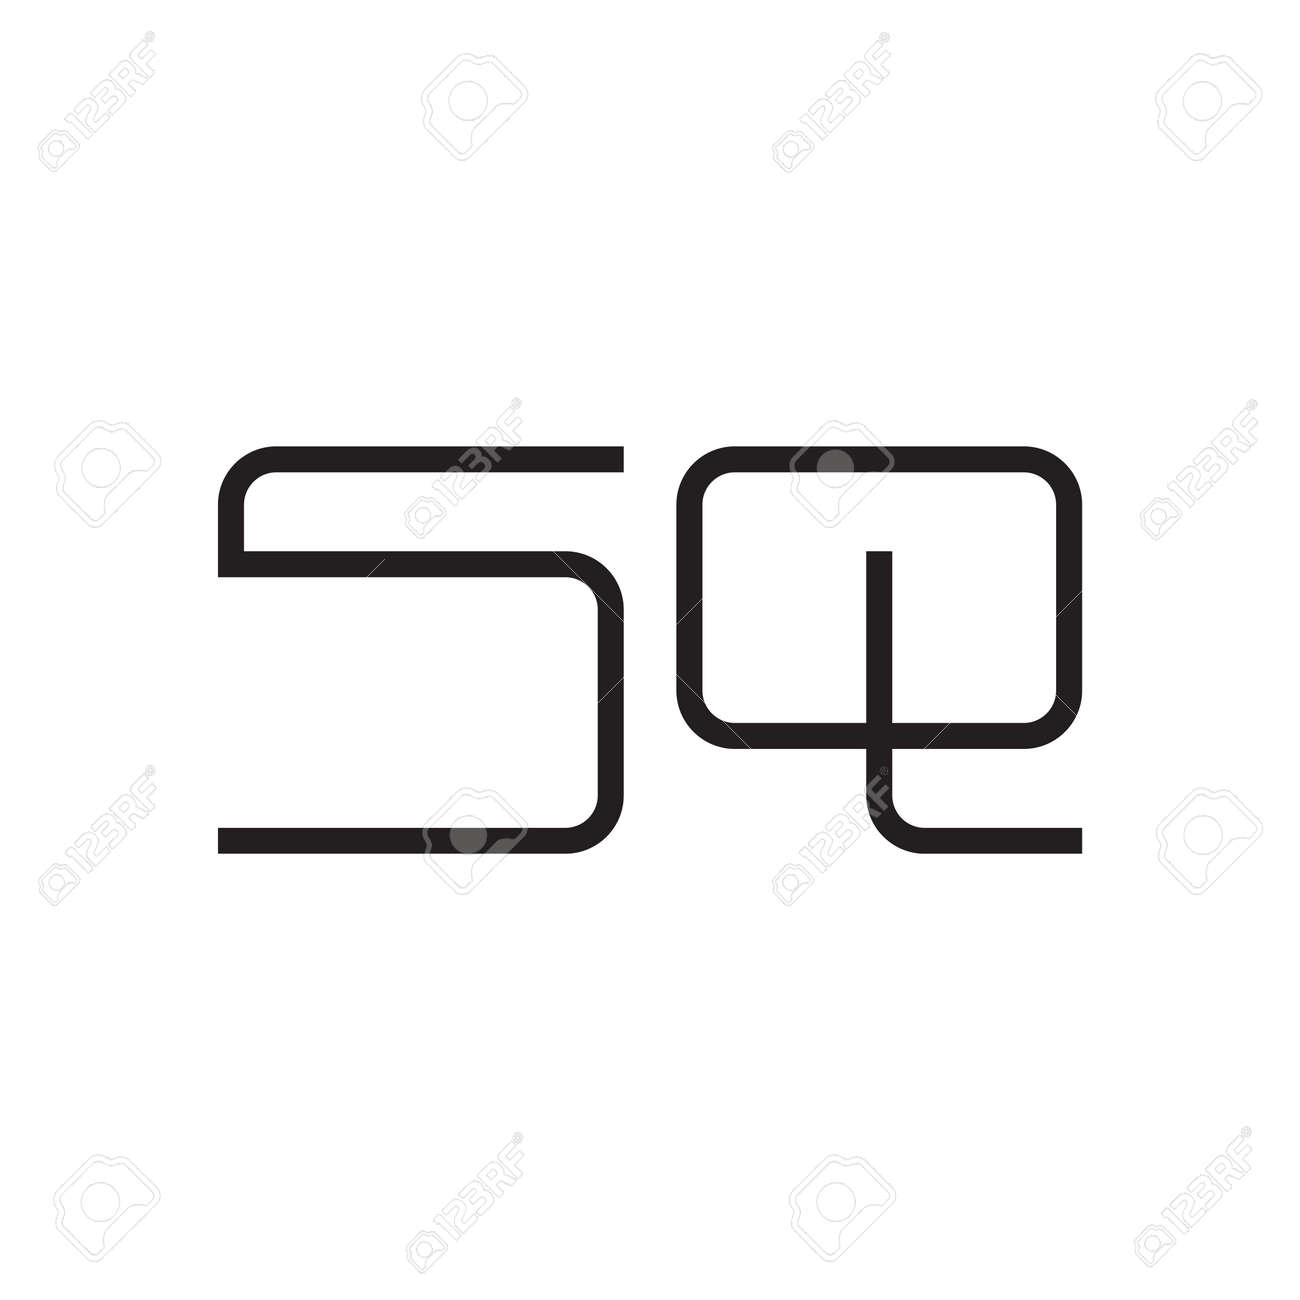 sq initial letter vector logo icon - 162948000